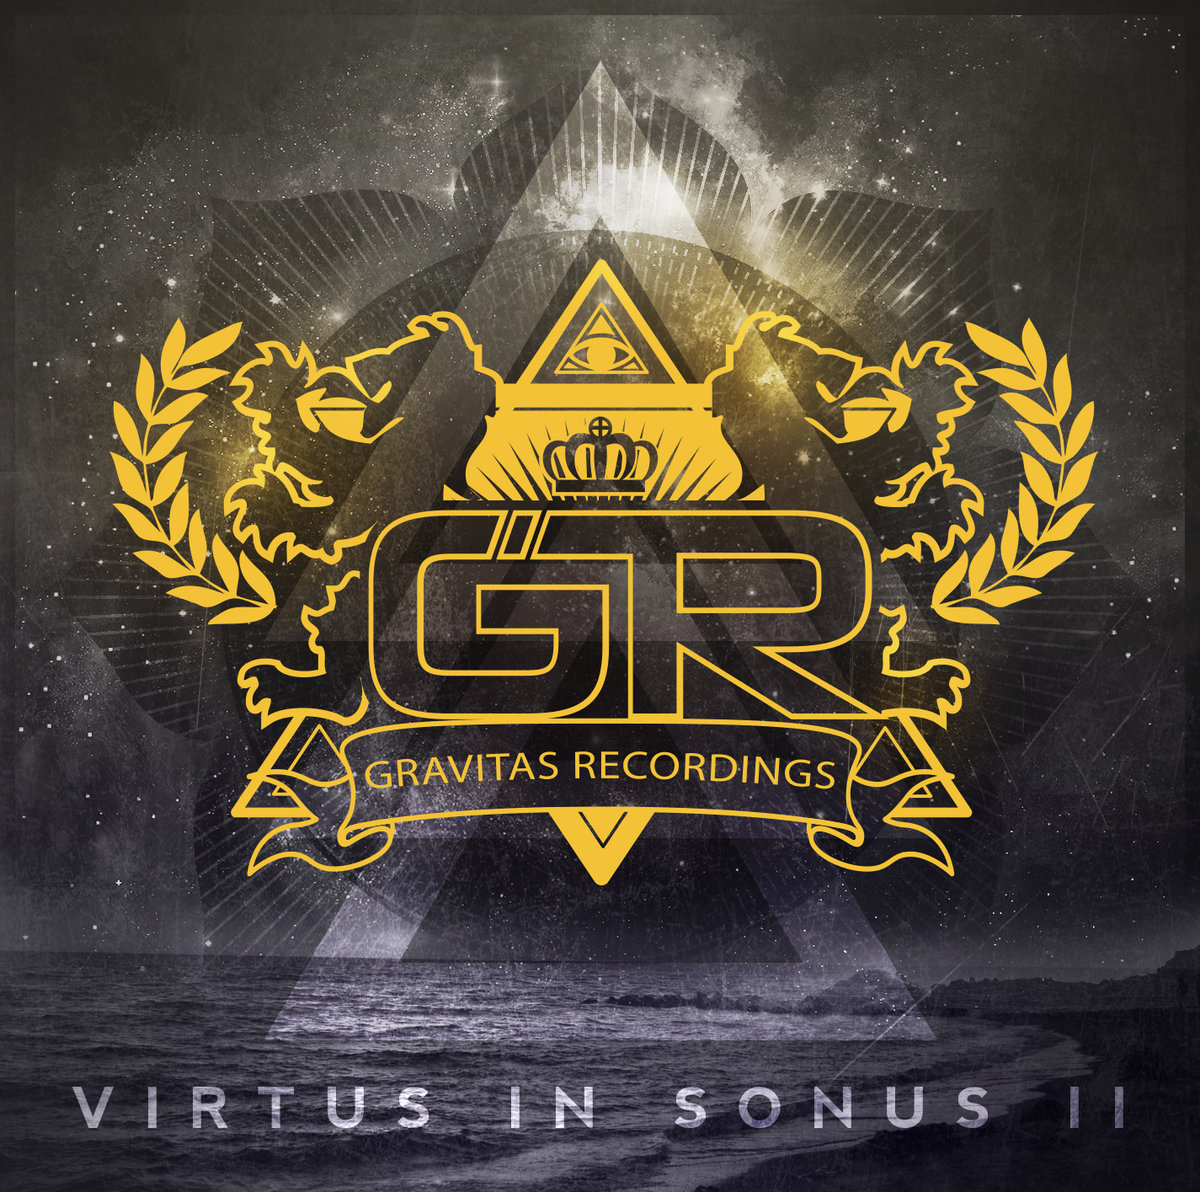 Soulular - In-between @ 'Virtus In Sonus II' album (Austin)